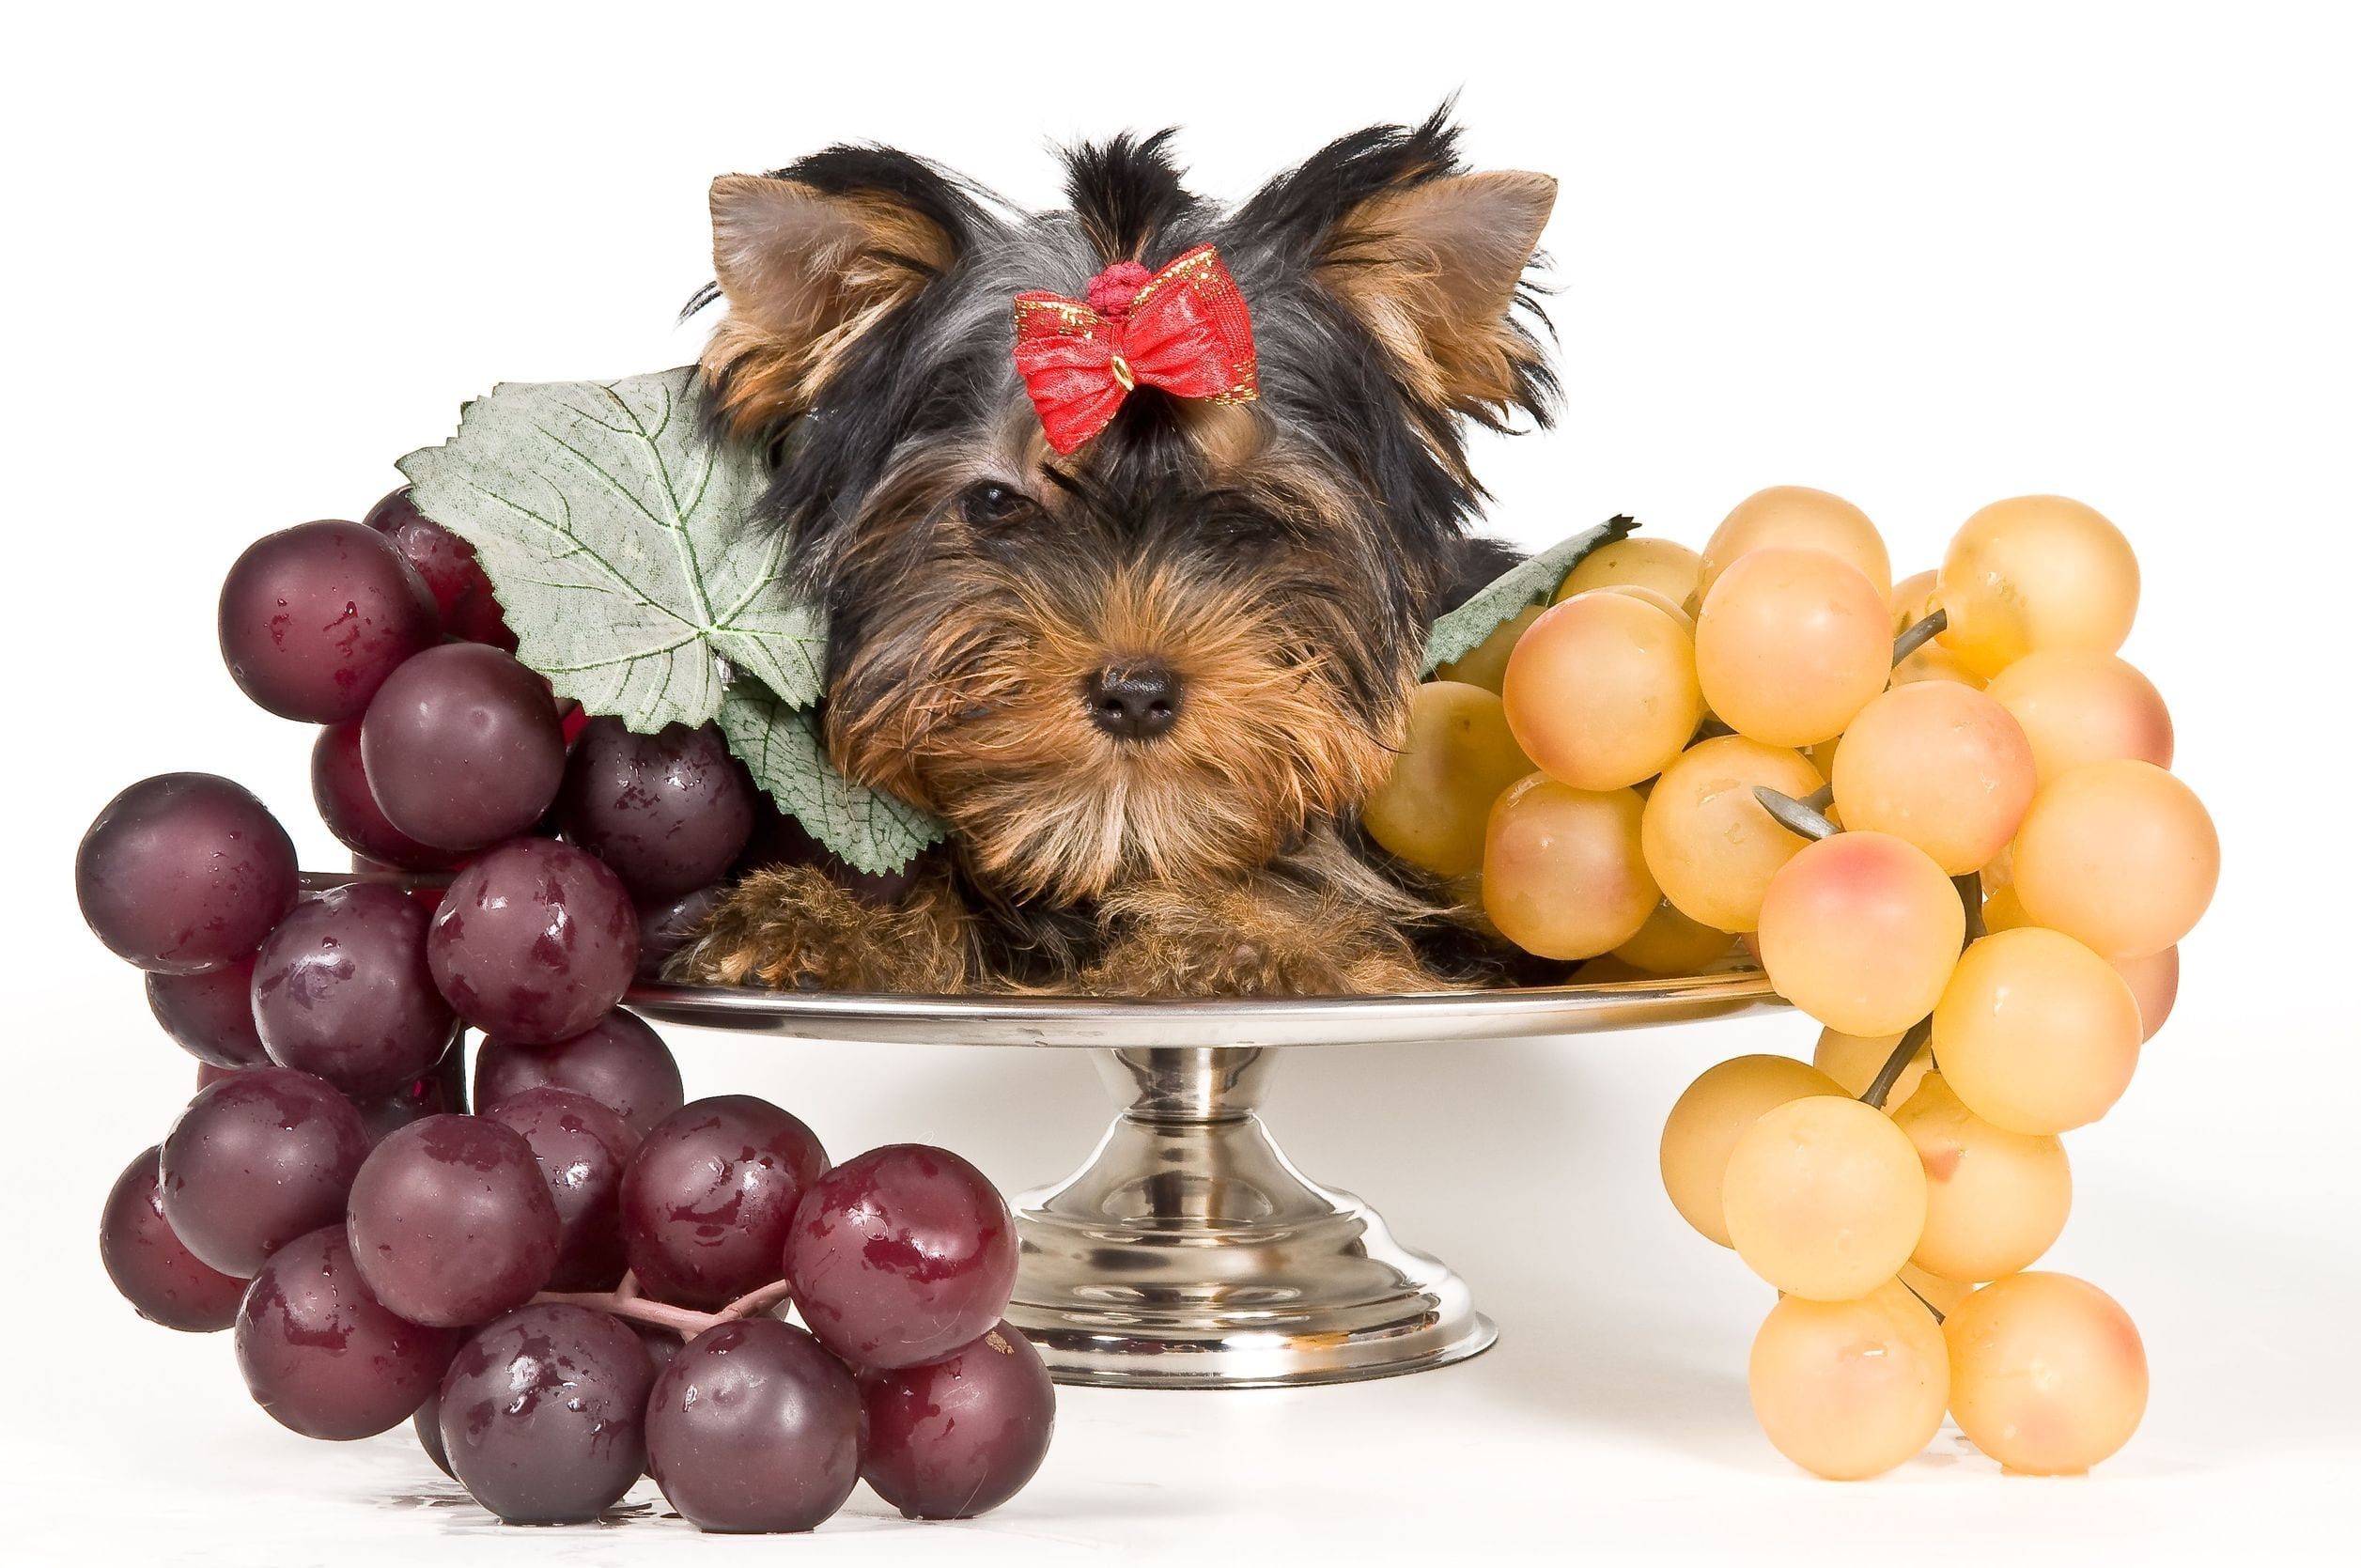 Human Food For Dogs: Can Dogs Eat Grapes?